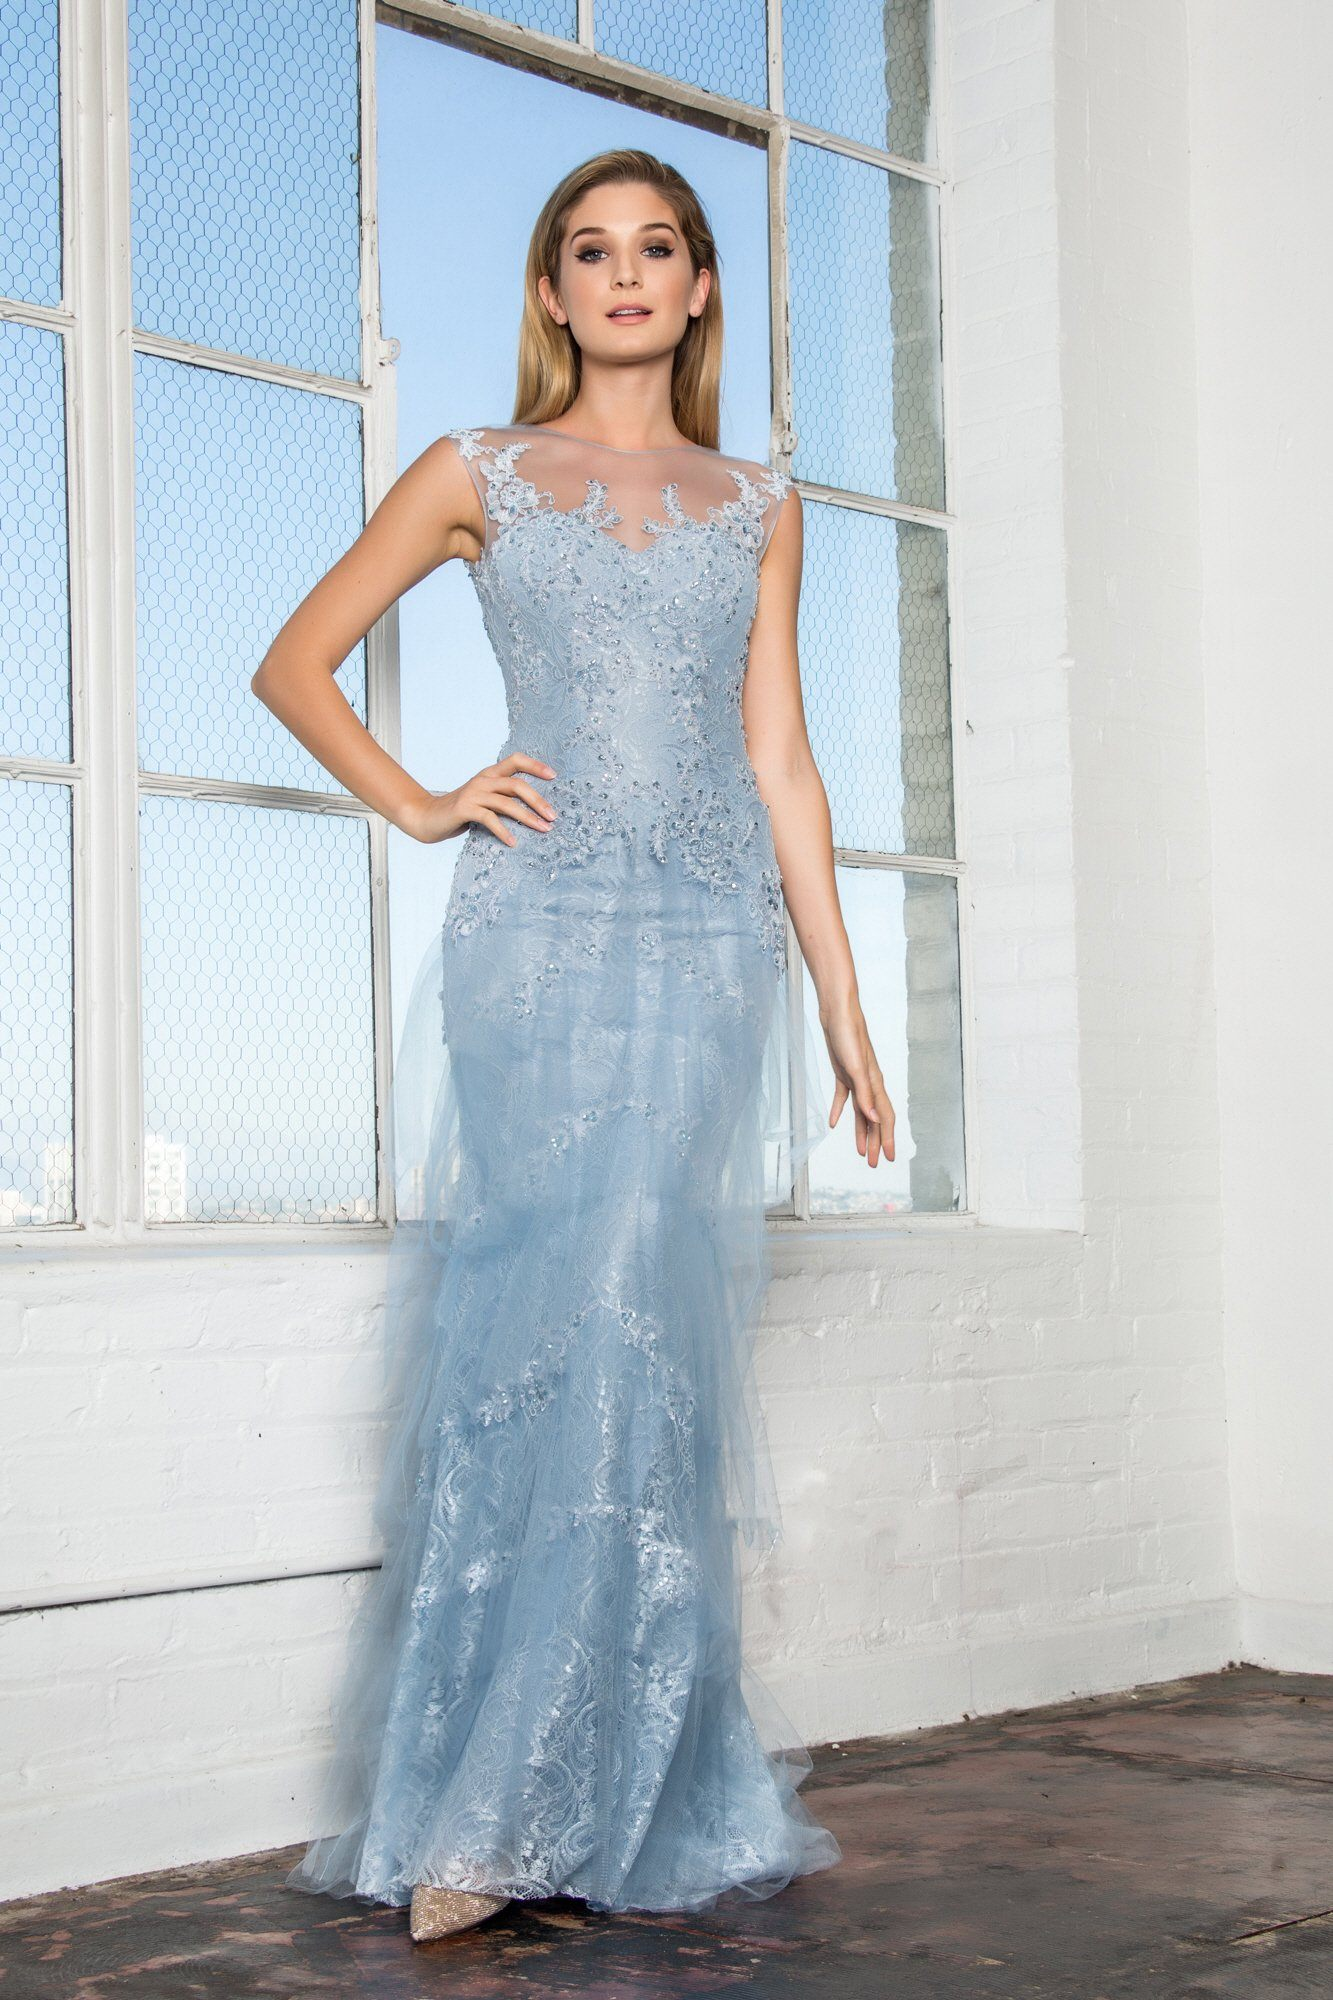 Lace tulle periwinkle wedding dress #gl2258 – Simply Fab Dress